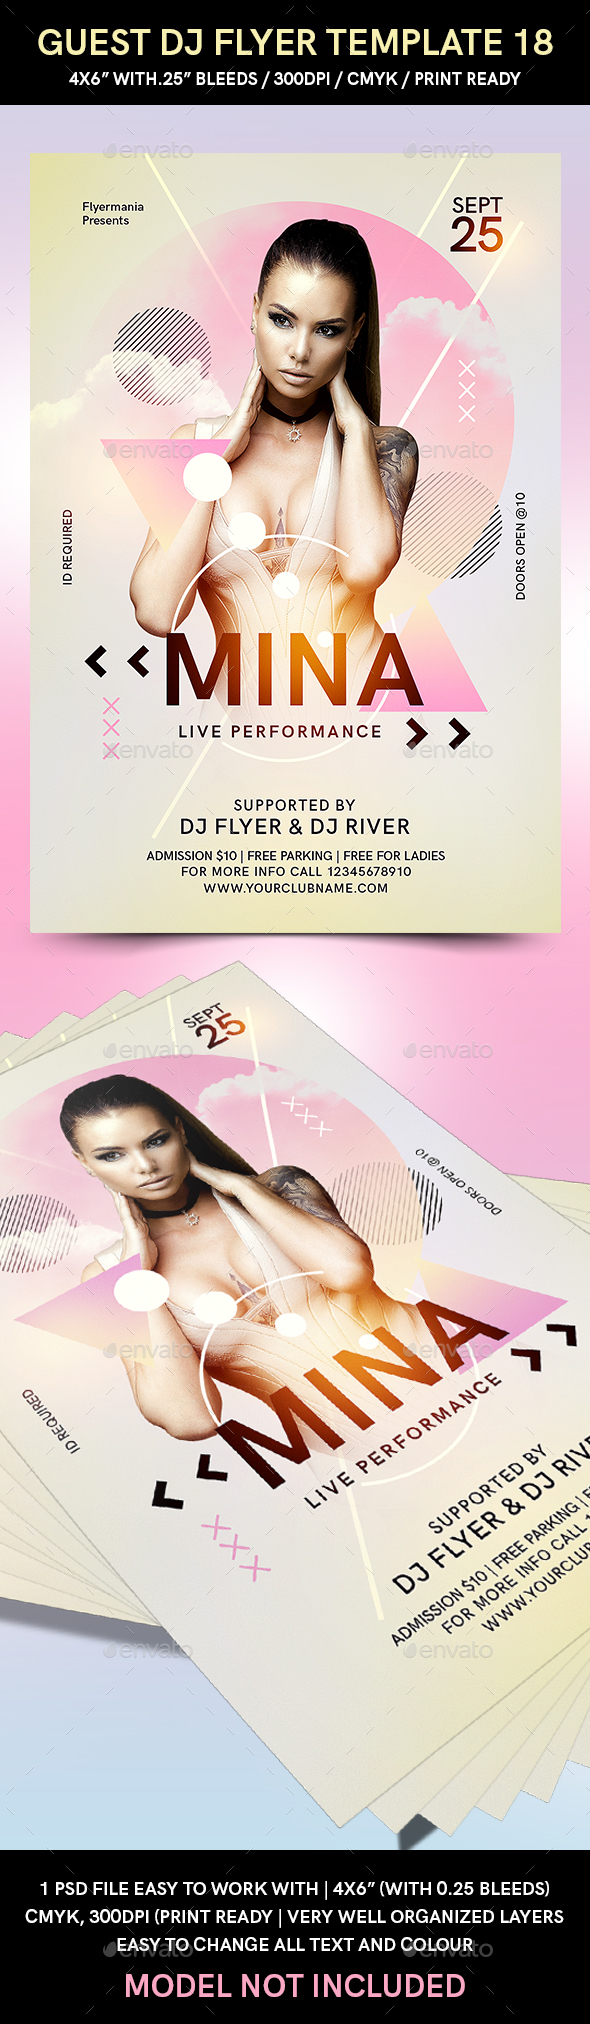 Guest DJ Flyer Template 18 - Flyers Print Templates